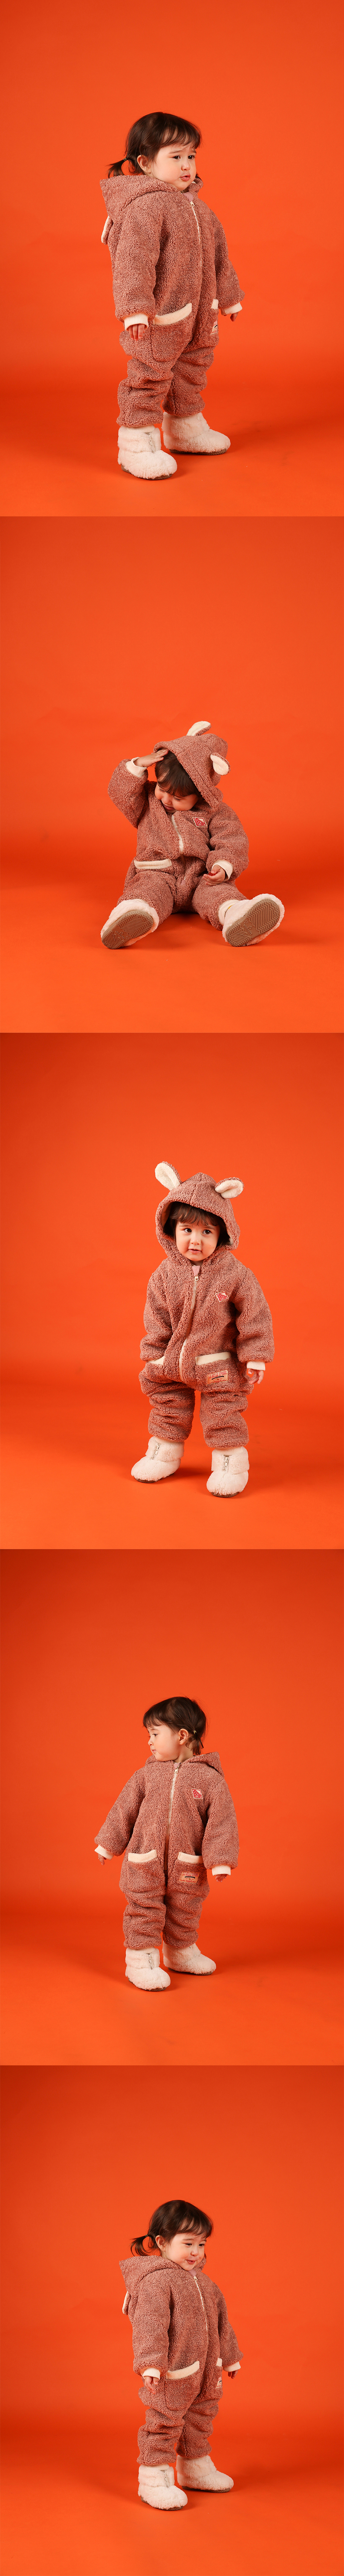 Willy bear baby winter overall 상세 이미지